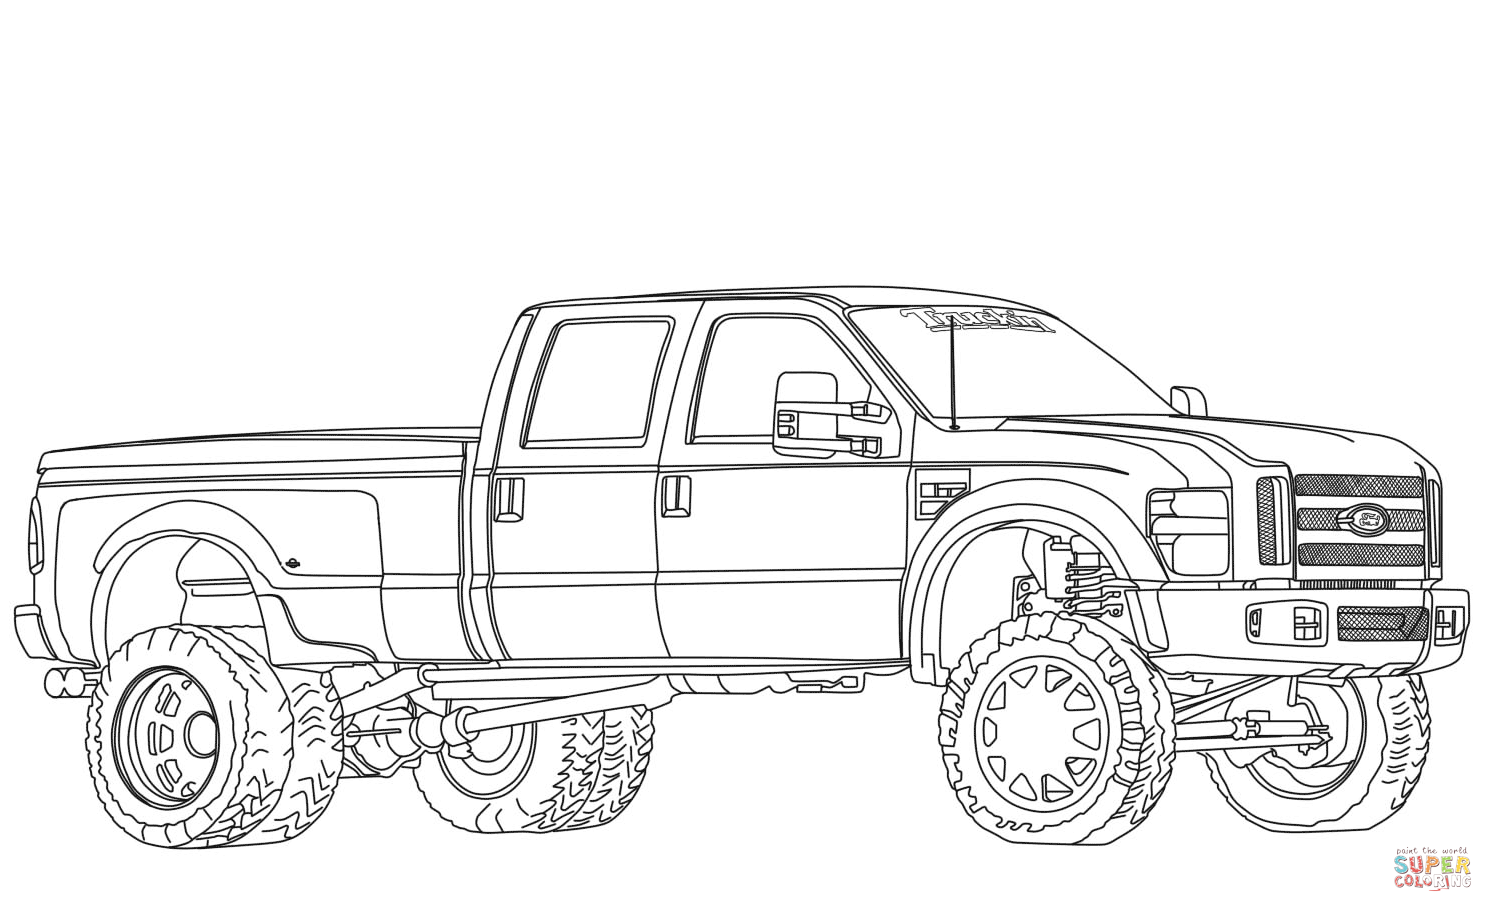 lifted truck coloring pages lifted truck drawings free download on clipartmag lifted truck pages coloring